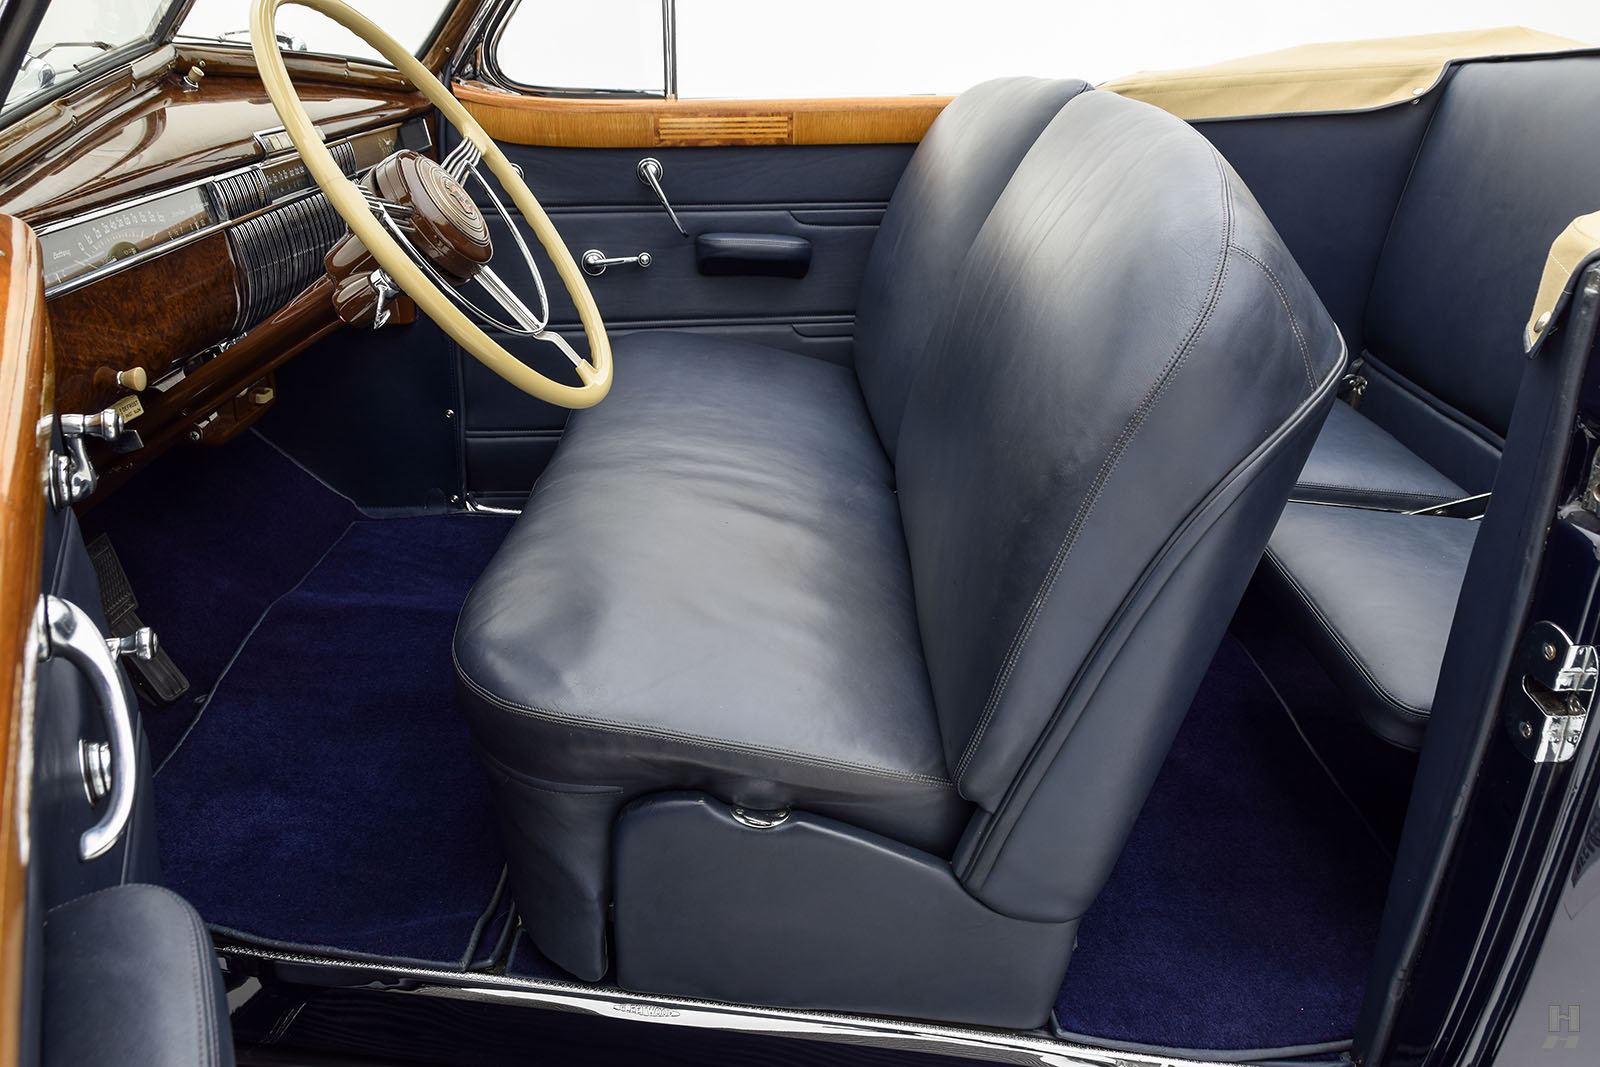 1940 CADILLAC SERIES 75 CONVERTIBLE COUPE For Sale (picture 3 of 6)